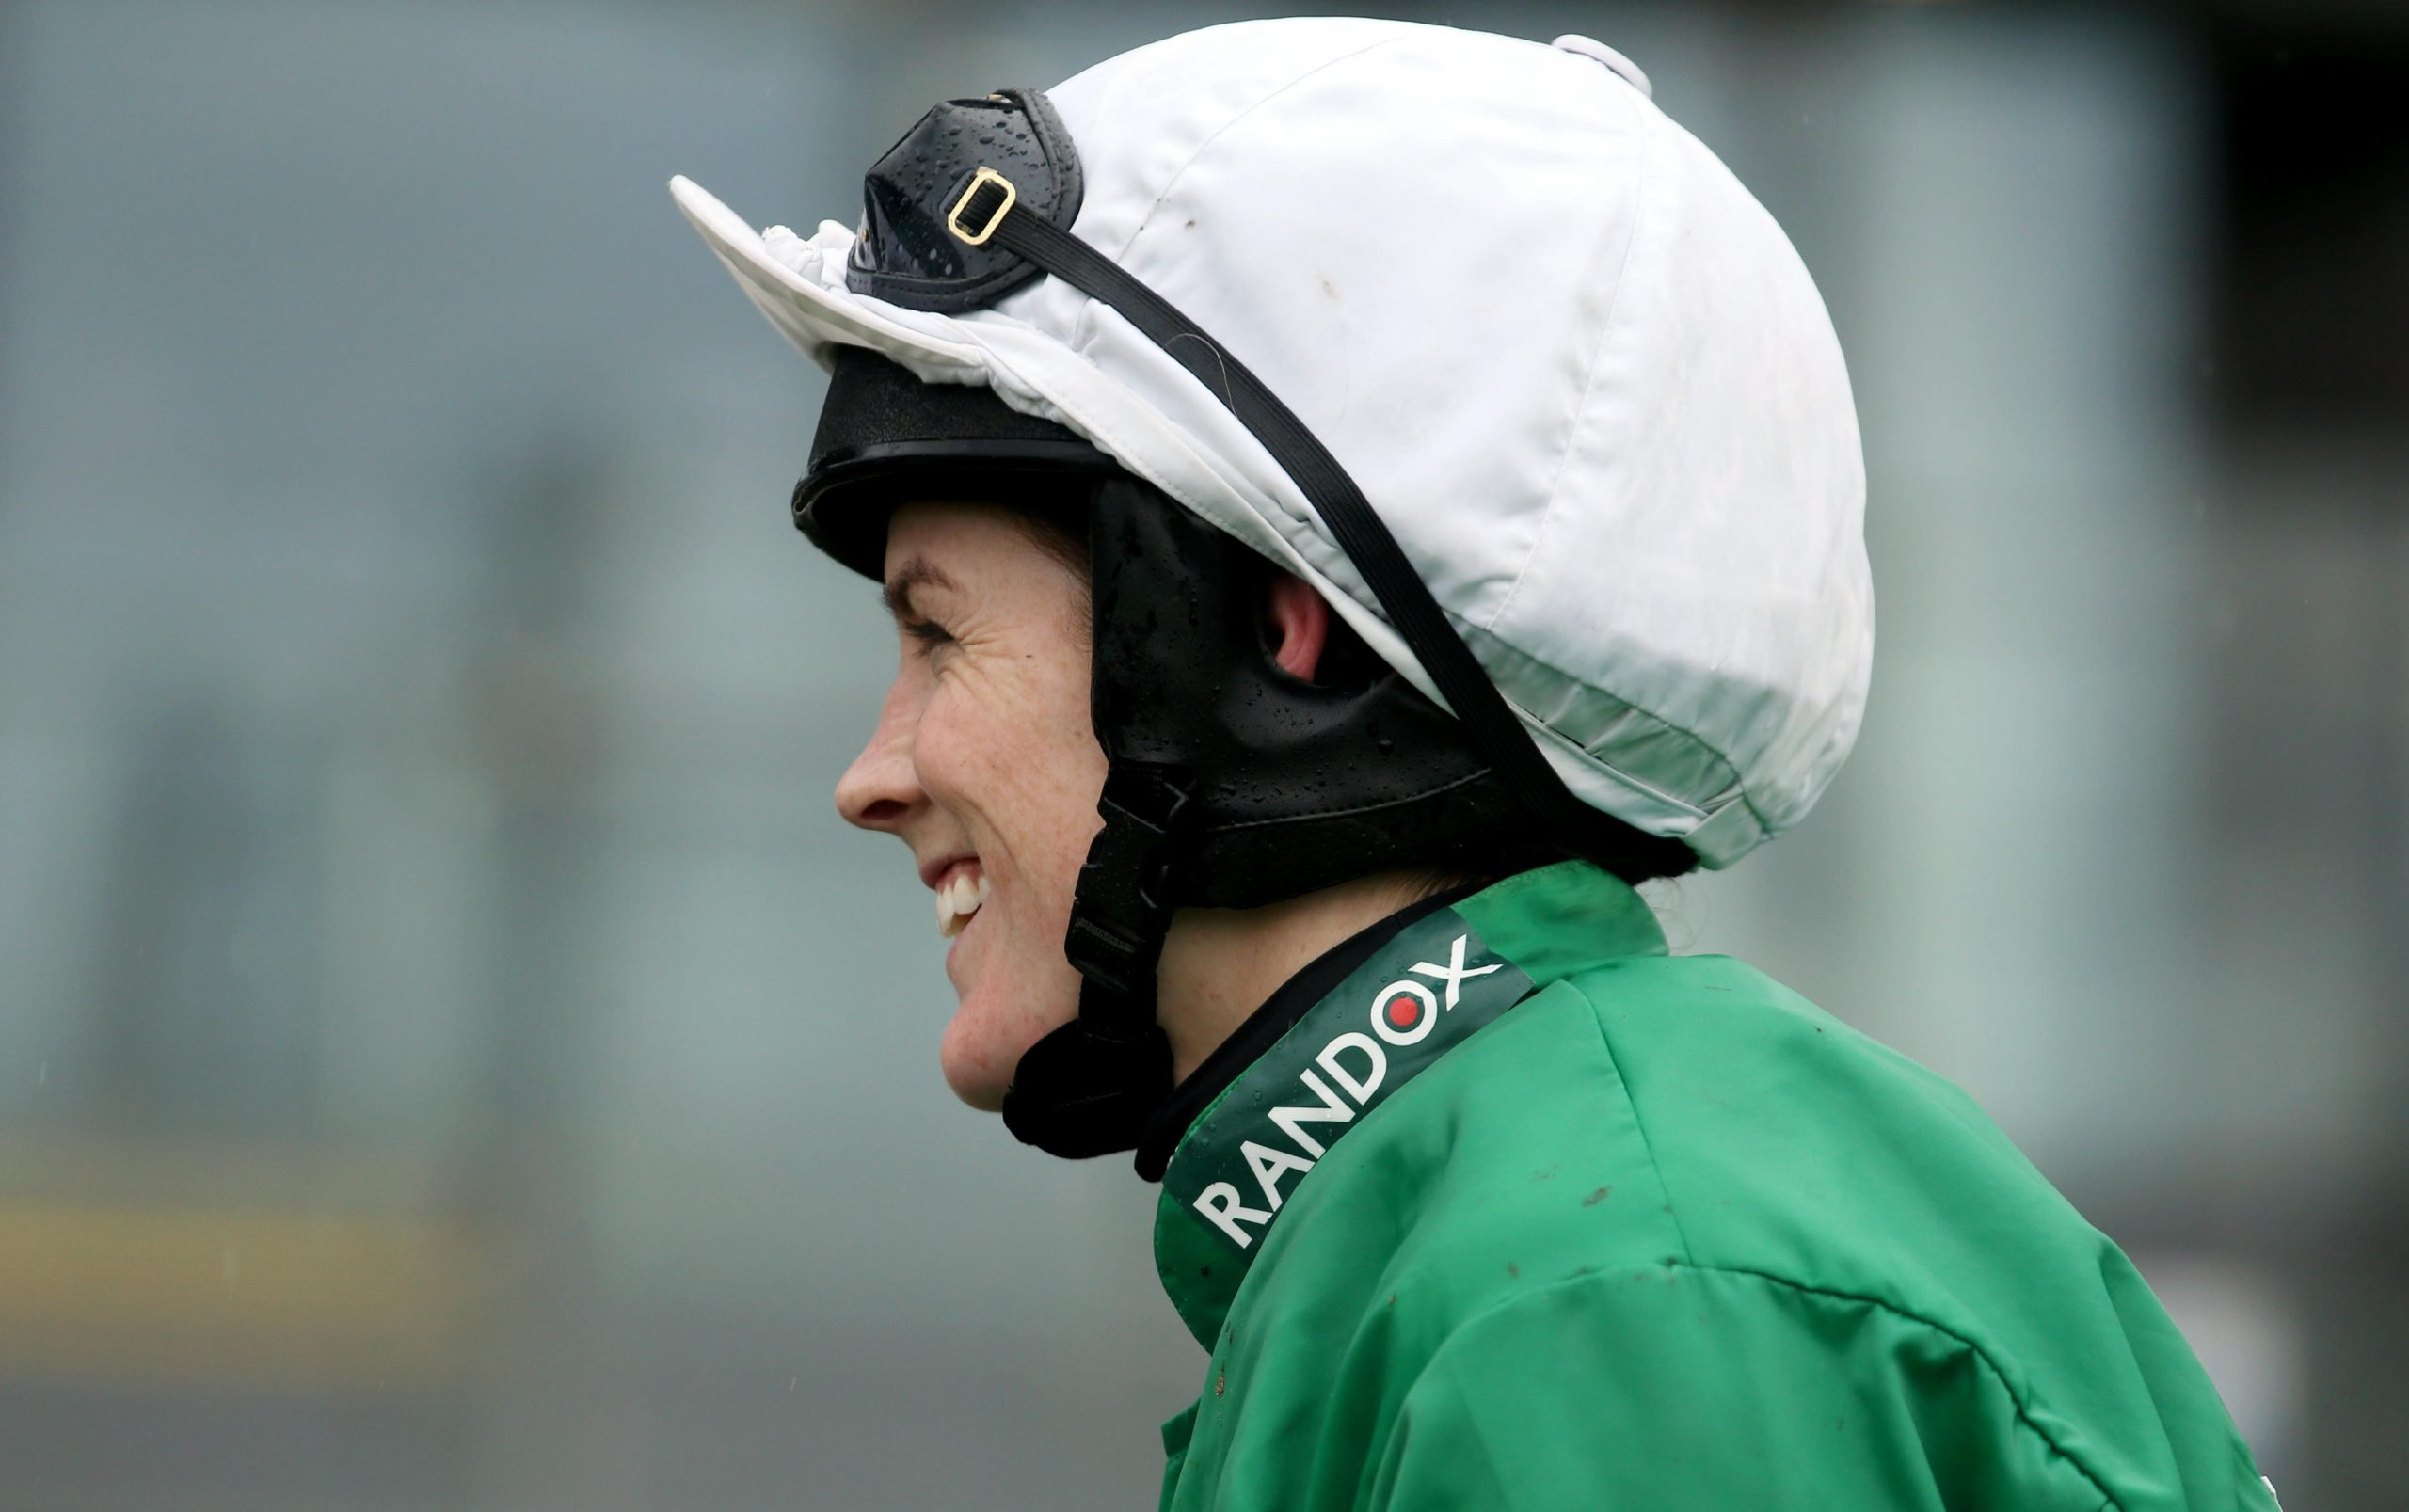 Jockey Rachael Blackmore celebrates winning the Close Brothers Red Rum Handicap Chase during Grand National Thursday of the 2019 Randox Health Grand National Festival at Aintree Racecourse.